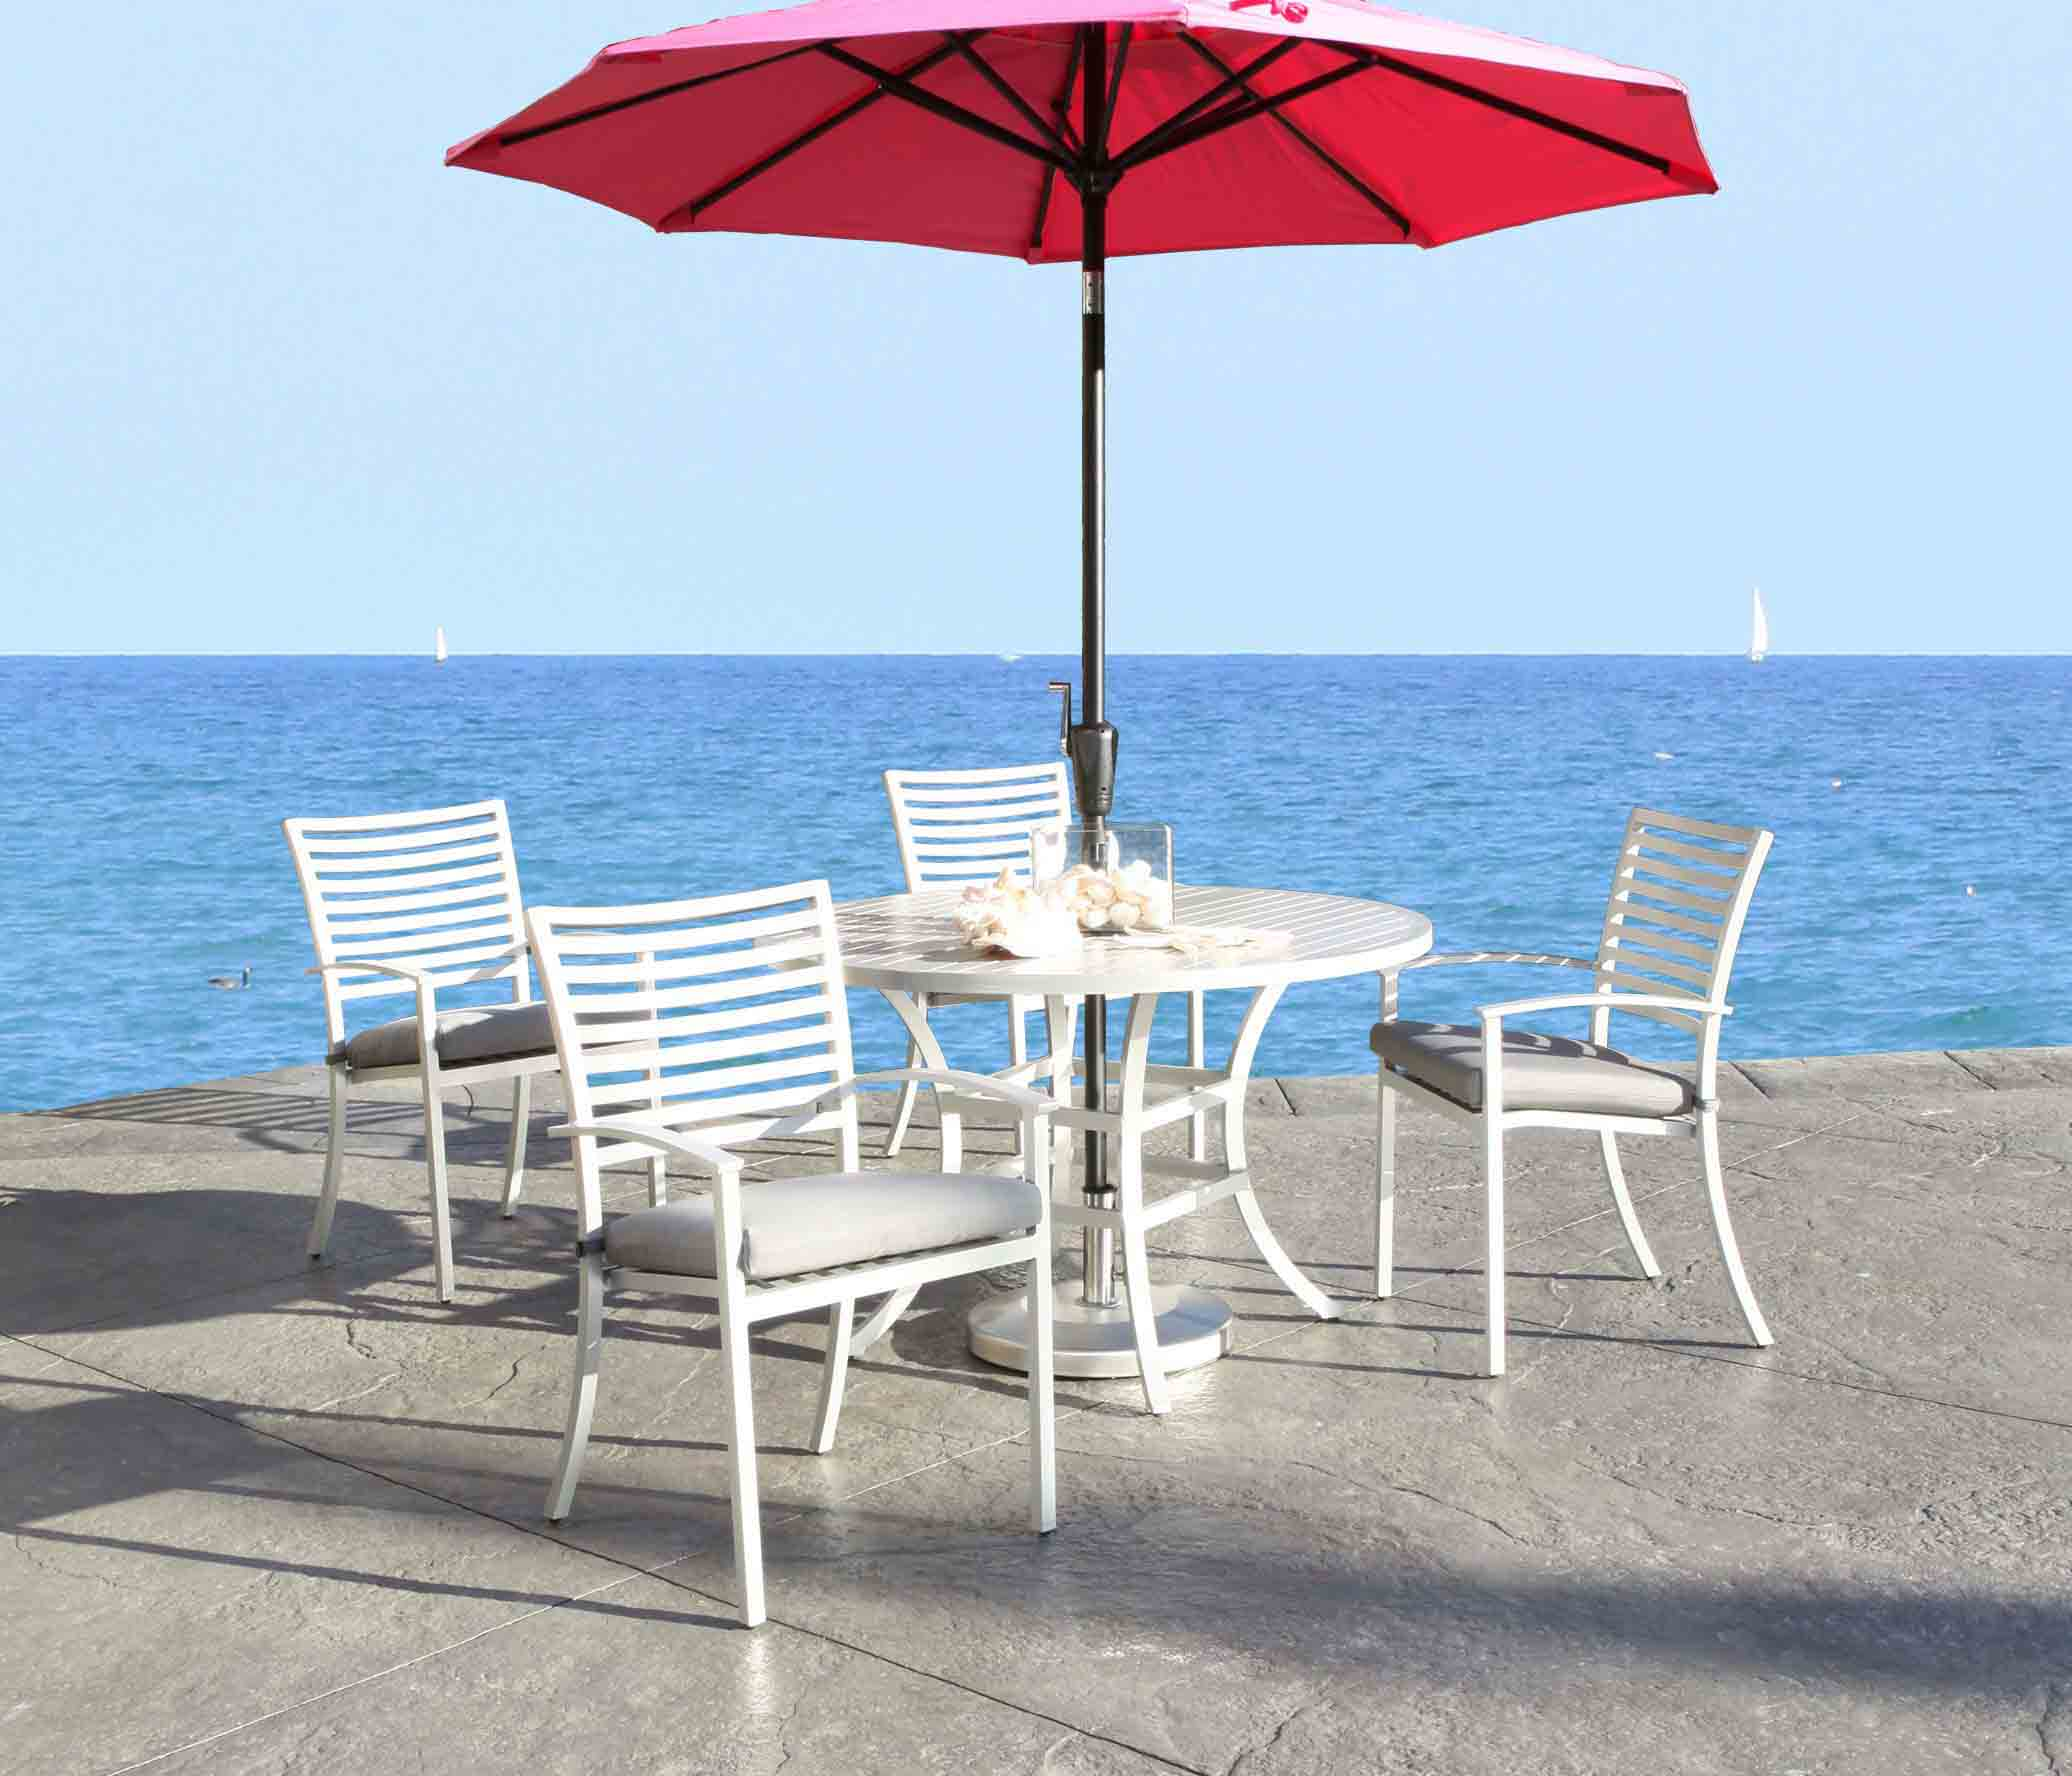 Cabana Coast 10′ Square Cantilever Umbrella